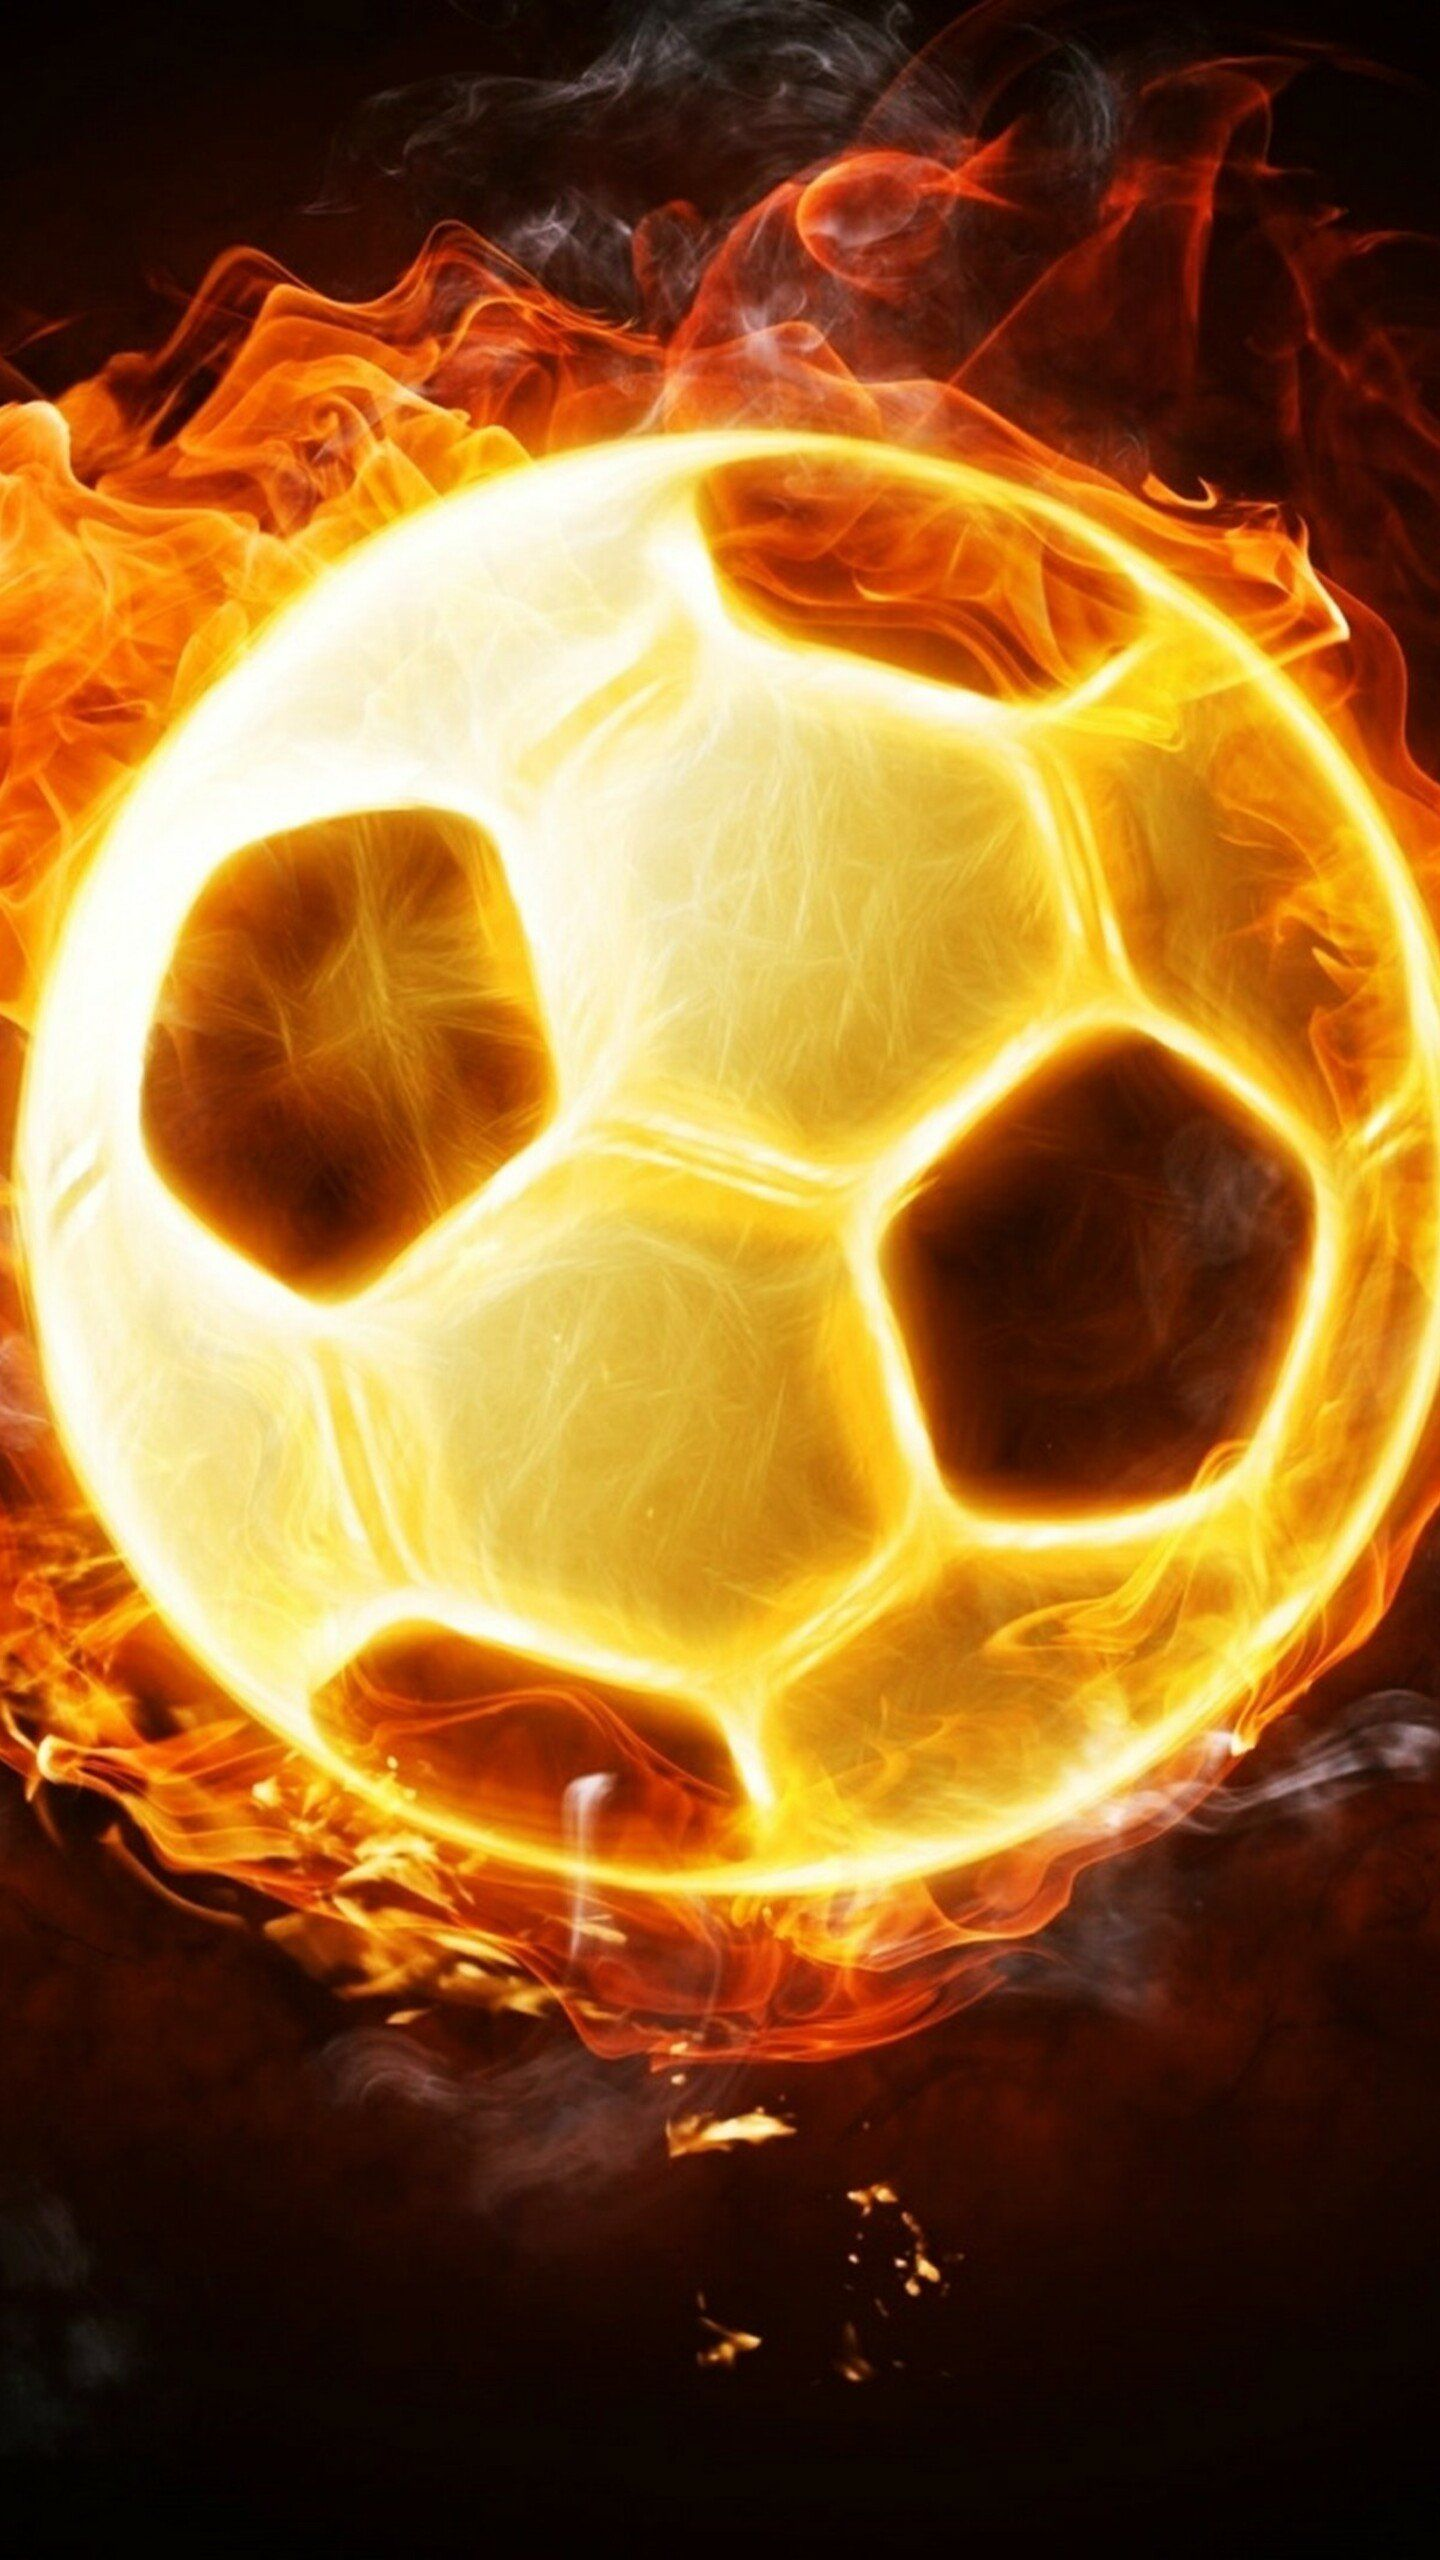 Football Soccer Fire Ball 4k Hd Sports Wallpapers Photos And Pictures In 2020 Football Soccer Sports Wallpapers Soccer